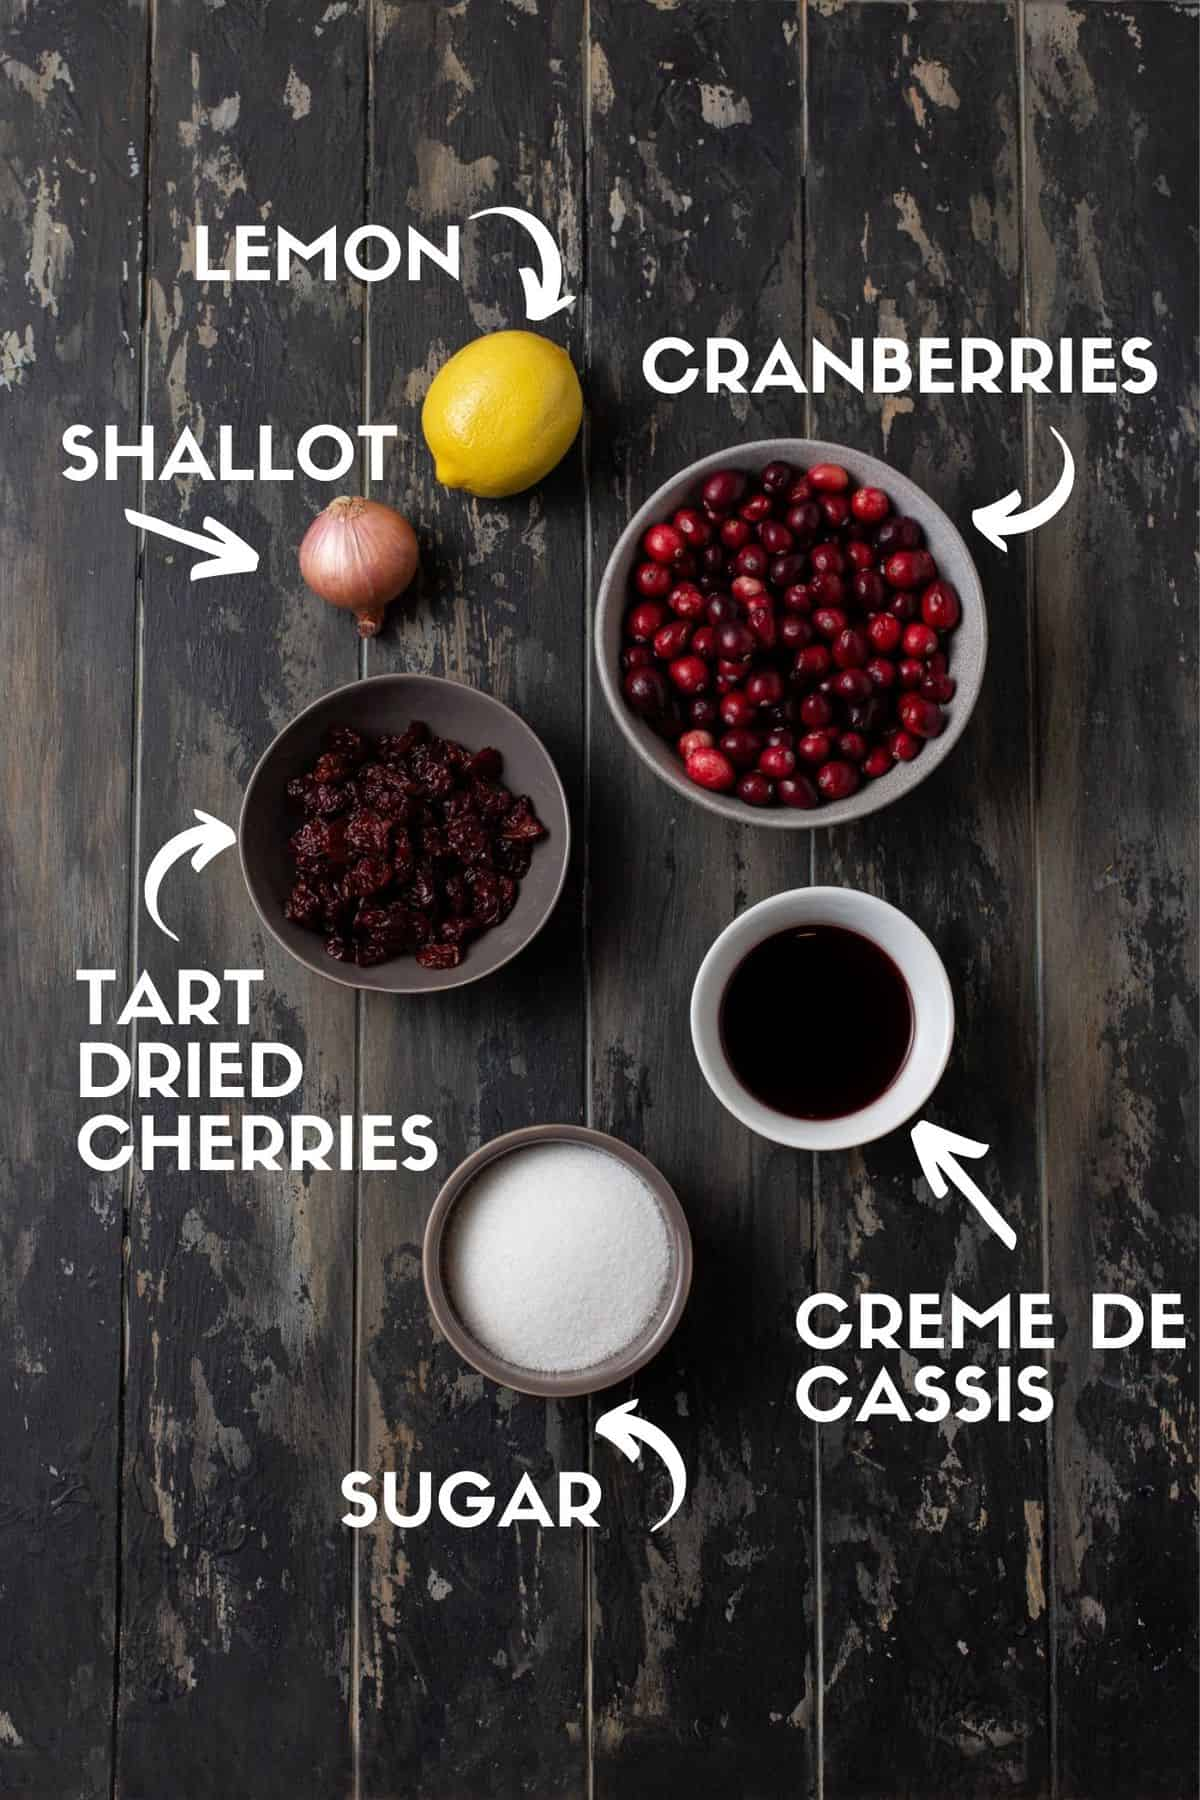 Fresh cranberries, creme de cassis, dried cherries, sugar, shallots and lemon ingredients for cranberry sauce.